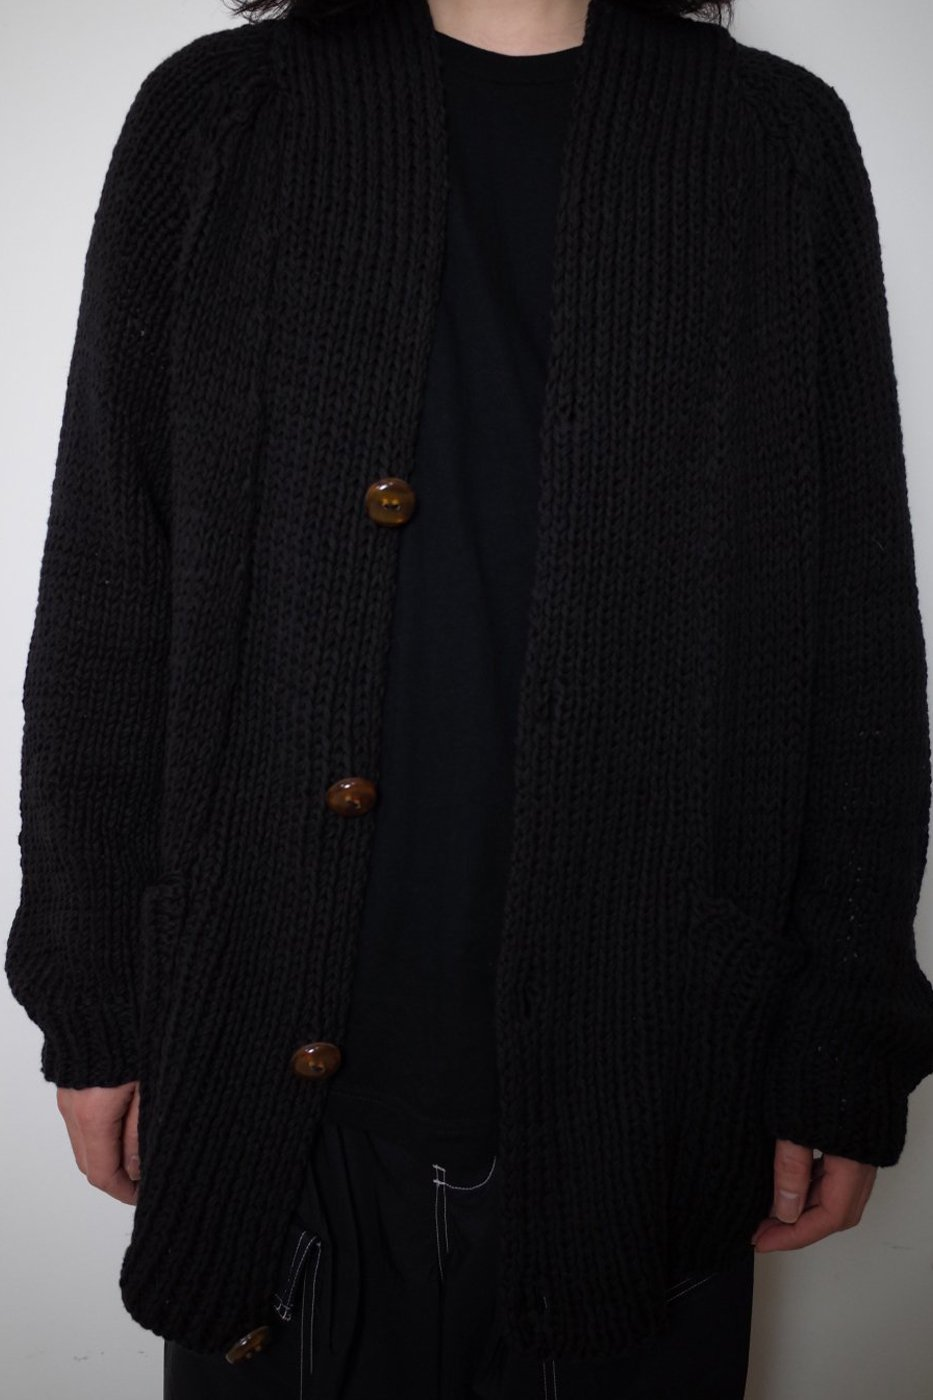 MAYDI マイディ-LONG SLEEVES CARDIGAN POCKET KNIT FRONT BUTTONS/LUI-BLACK